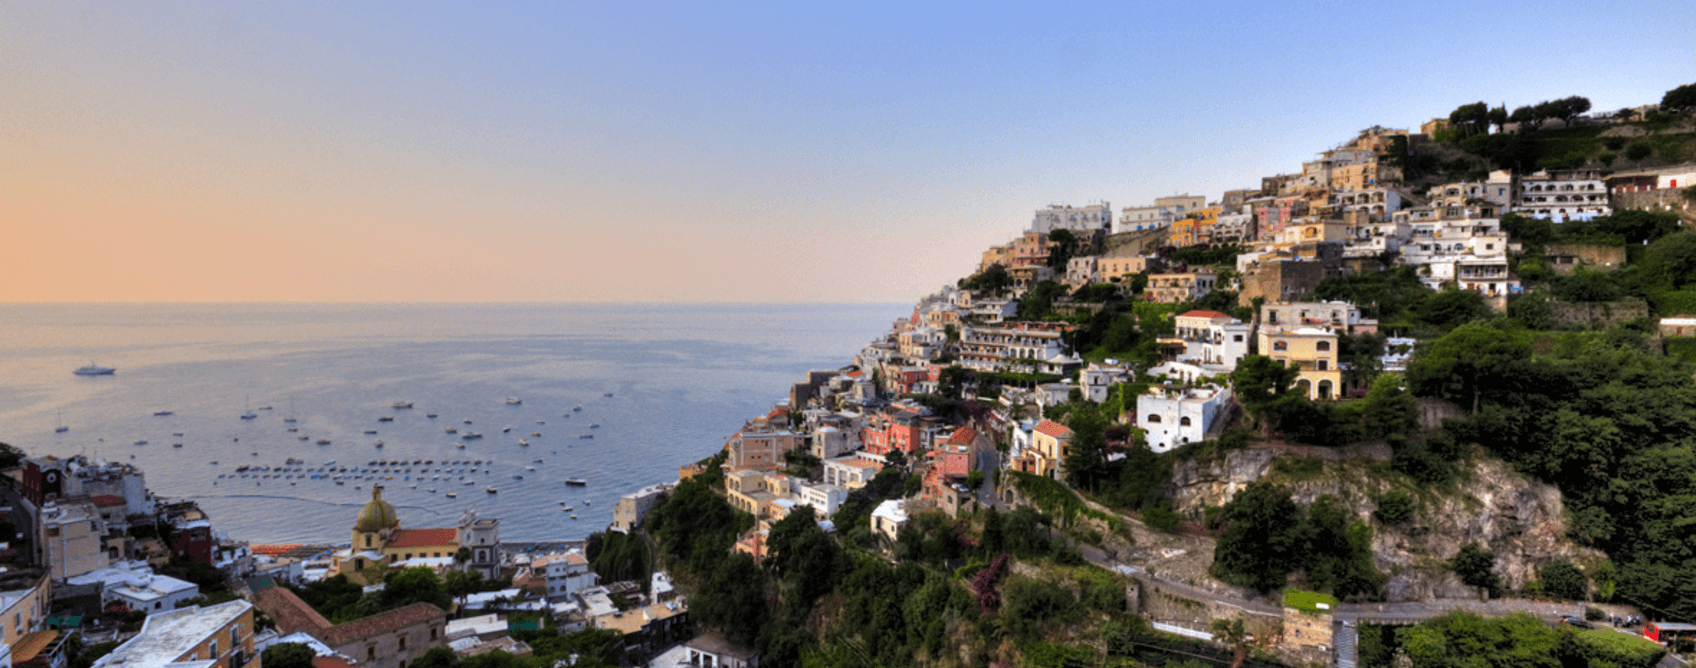 positano-boat-charter-positano-boat-cruise-view-sunset